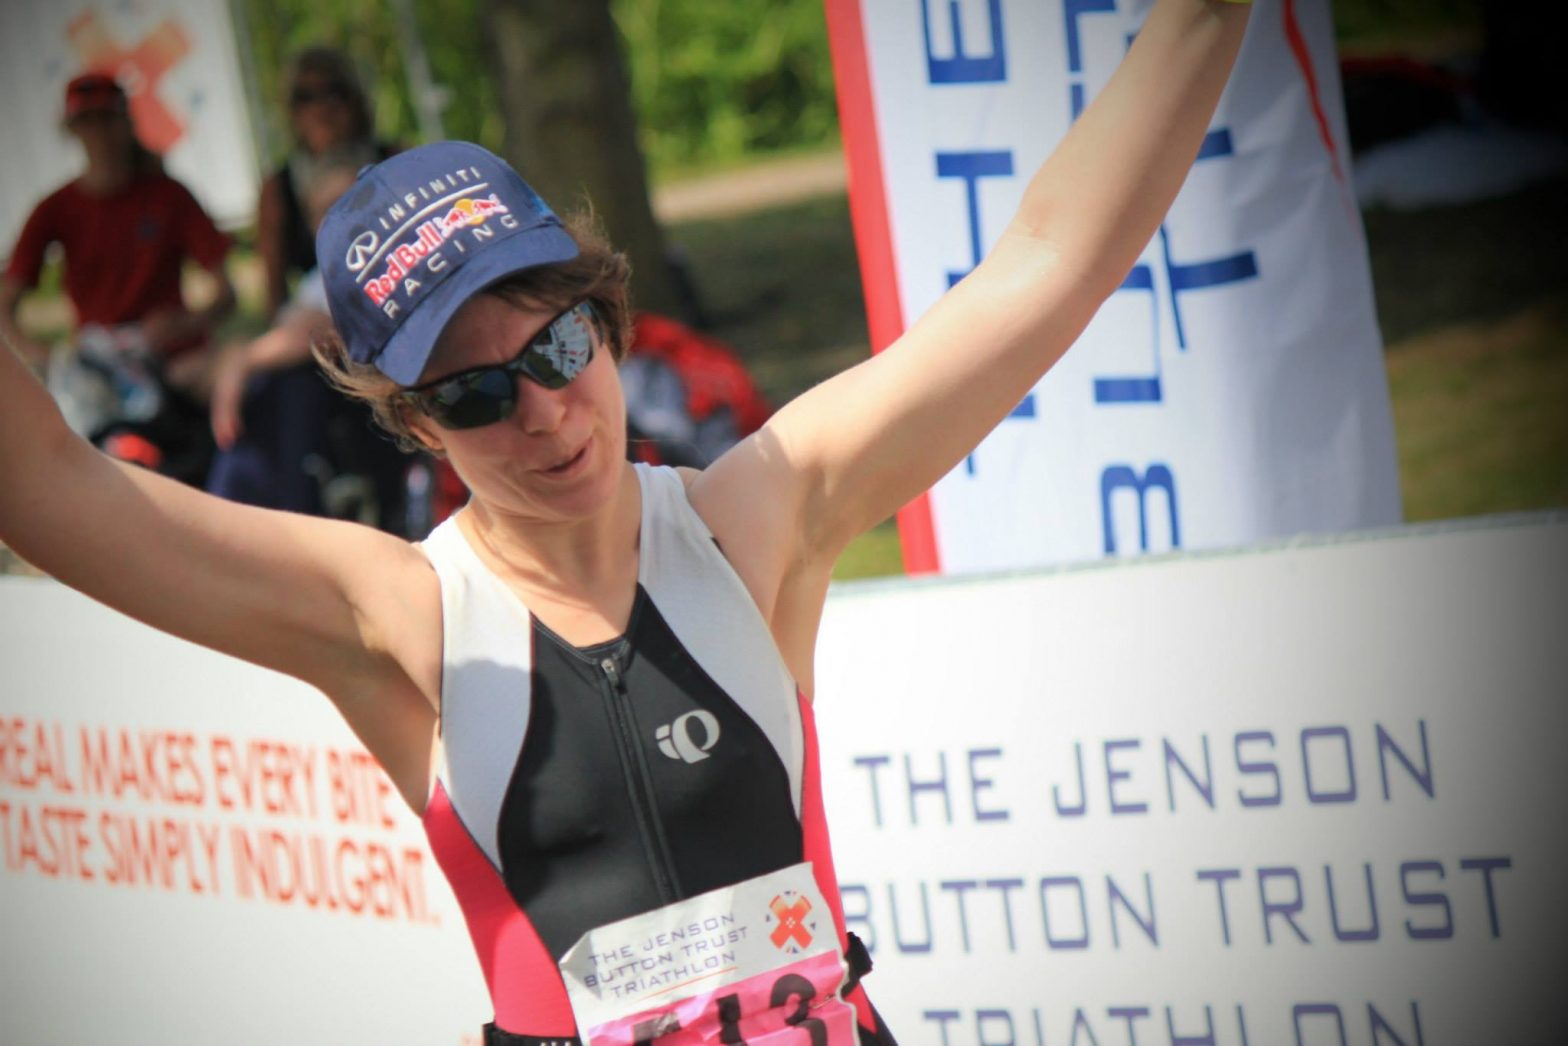 Hypnotherapy for triathletes